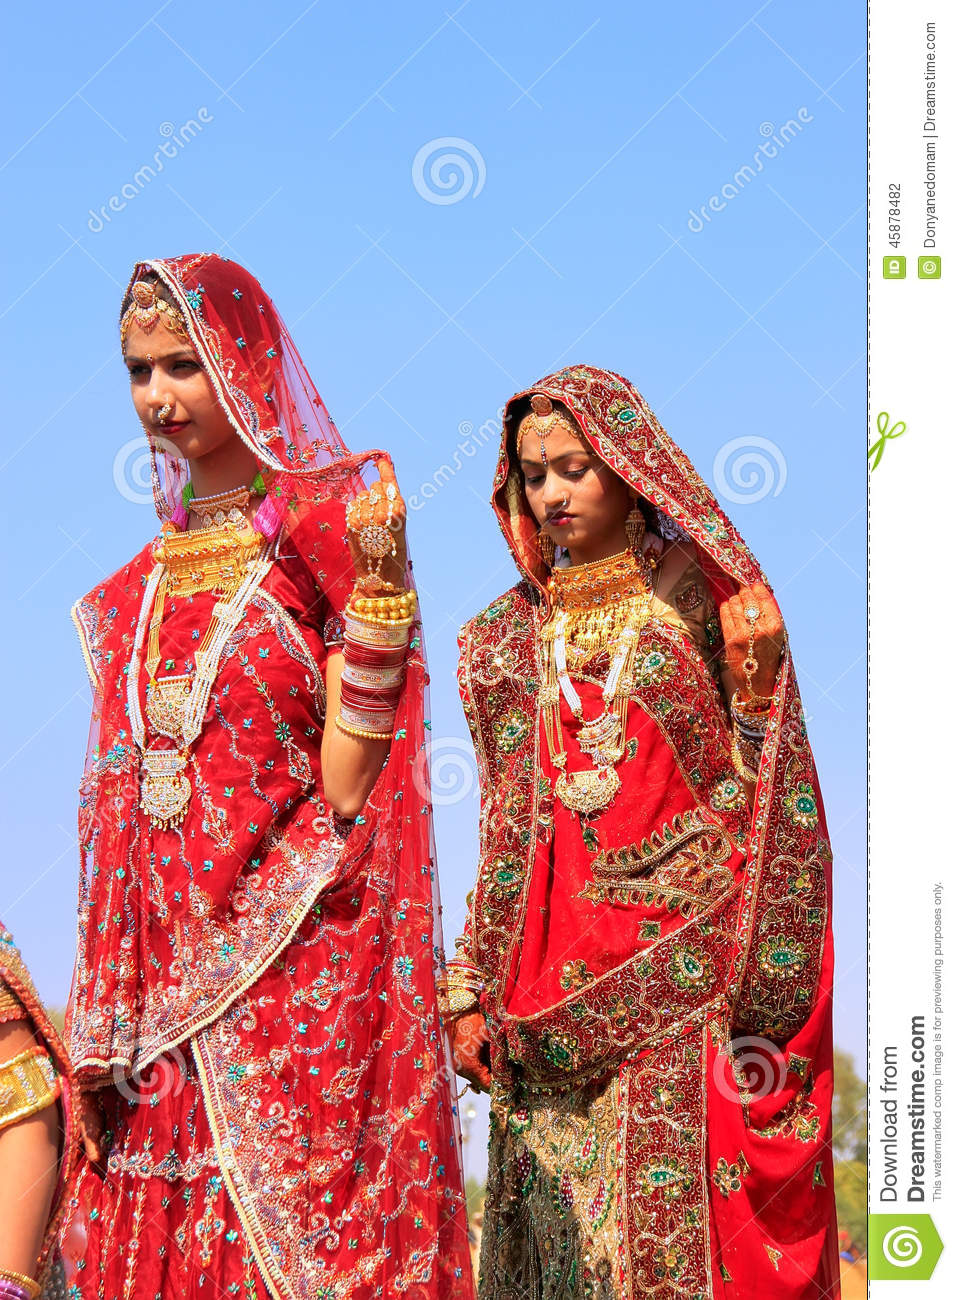 Traditional dress of rajasthan clipart clip art black and white library Young Women In Traditional Dress Taking Part In Desert Festival ... clip art black and white library